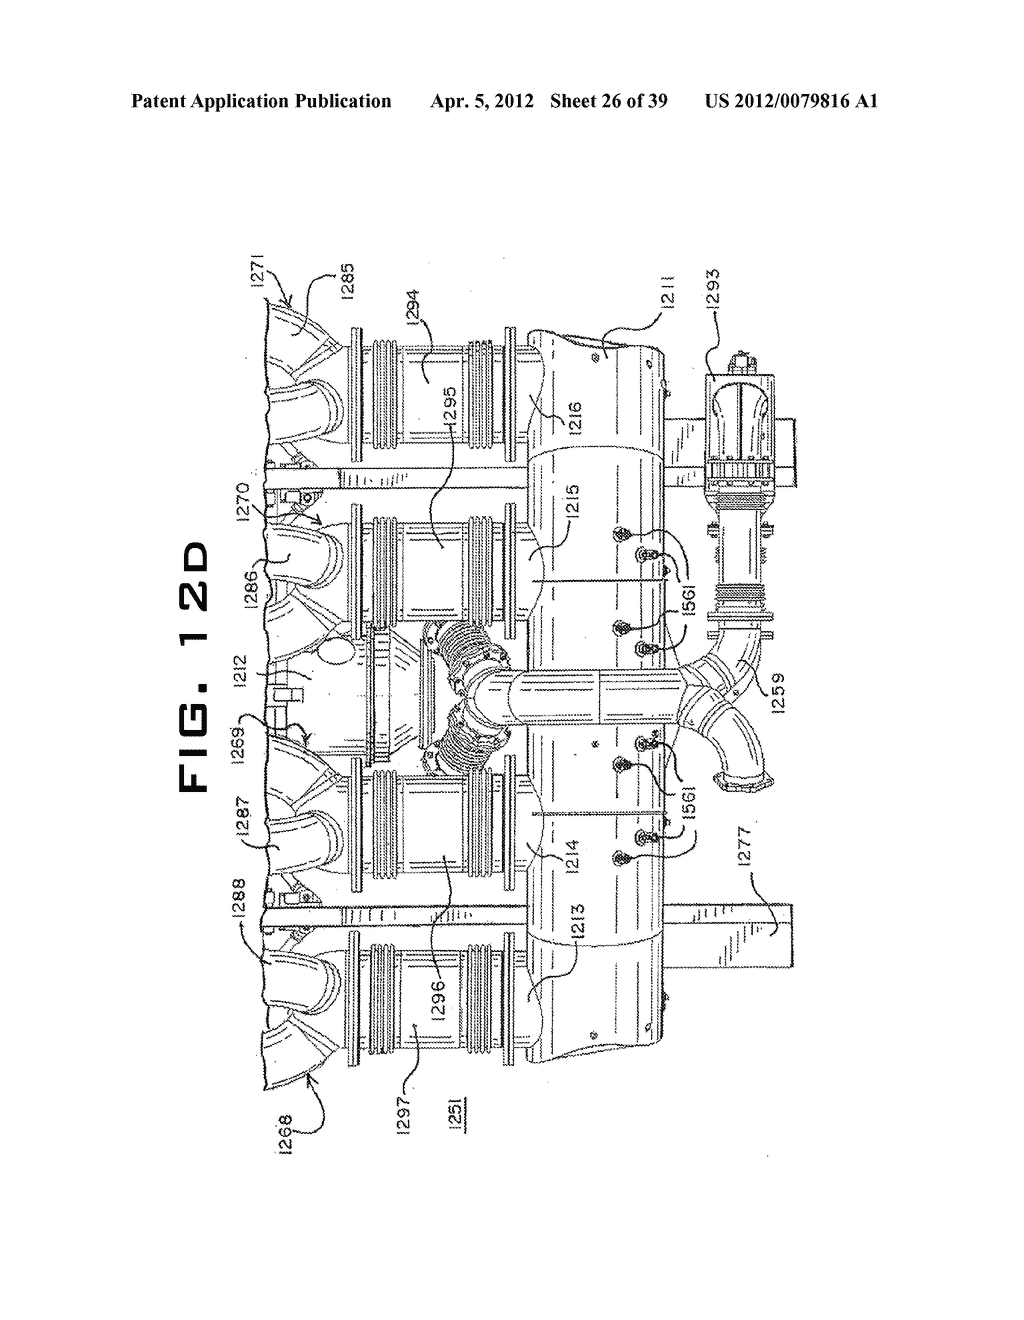 Turbocharger Mixing Manifold For An Exhaust Aftertreatment System Train Diesel Engine Diagram A Locomotive Having Two Stroke Schematic